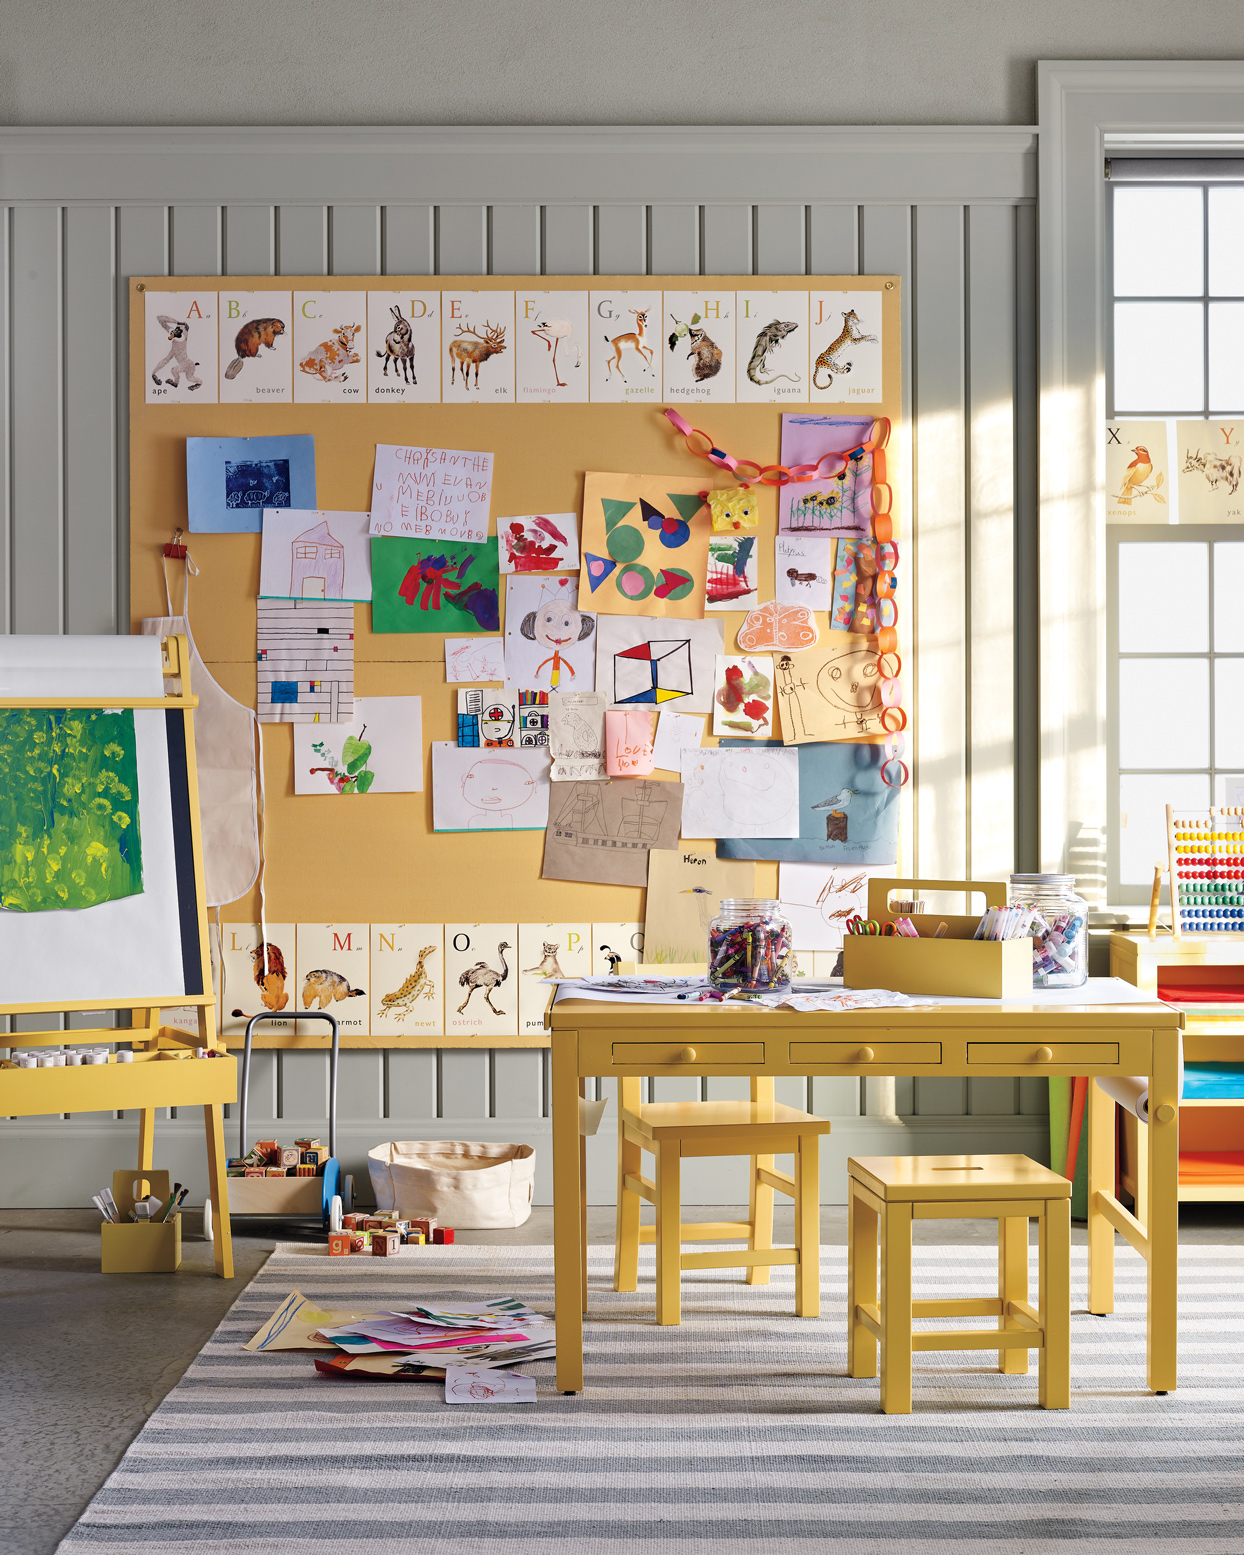 kids art room filled with crafts